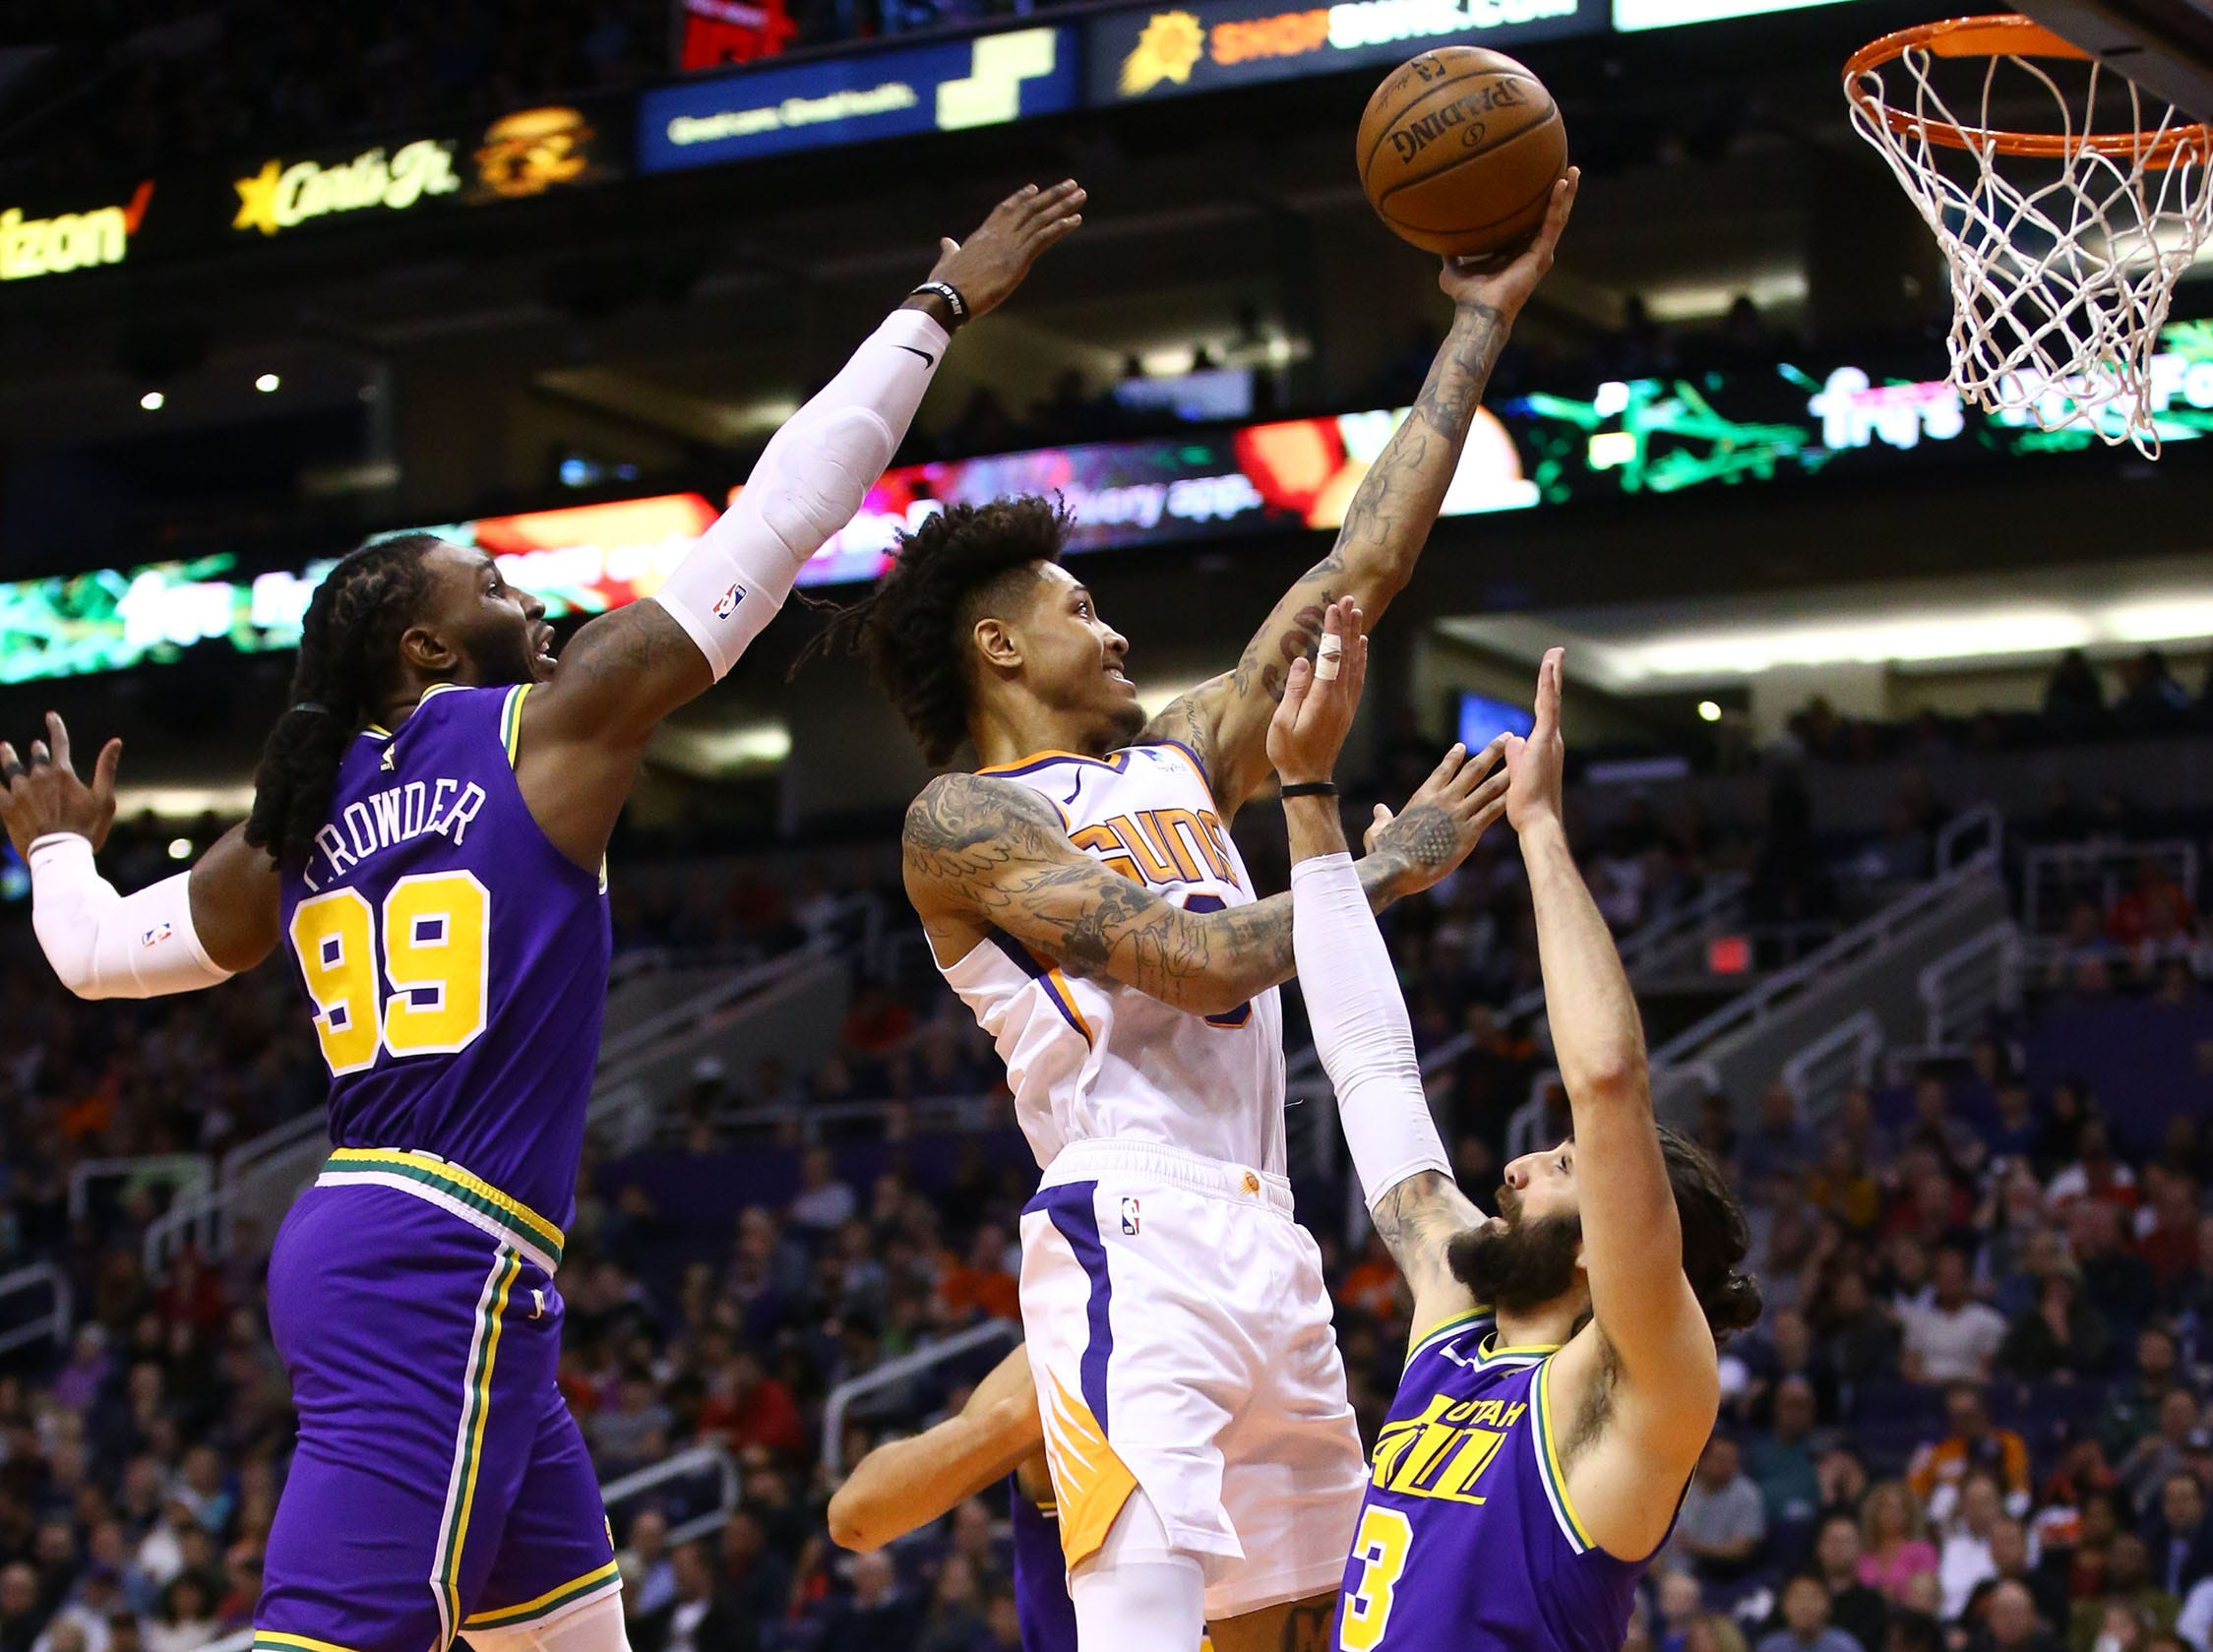 Phoenix Suns forward Kelly Oubre Jr. (3) drives to the basket over Utah Jazz guard Ricky Rubio (3) and forward Jae Crowder (99) in the first half on Mar. 13, 2019 at Talking Stick Resort Arena in Phoenix, Ariz.